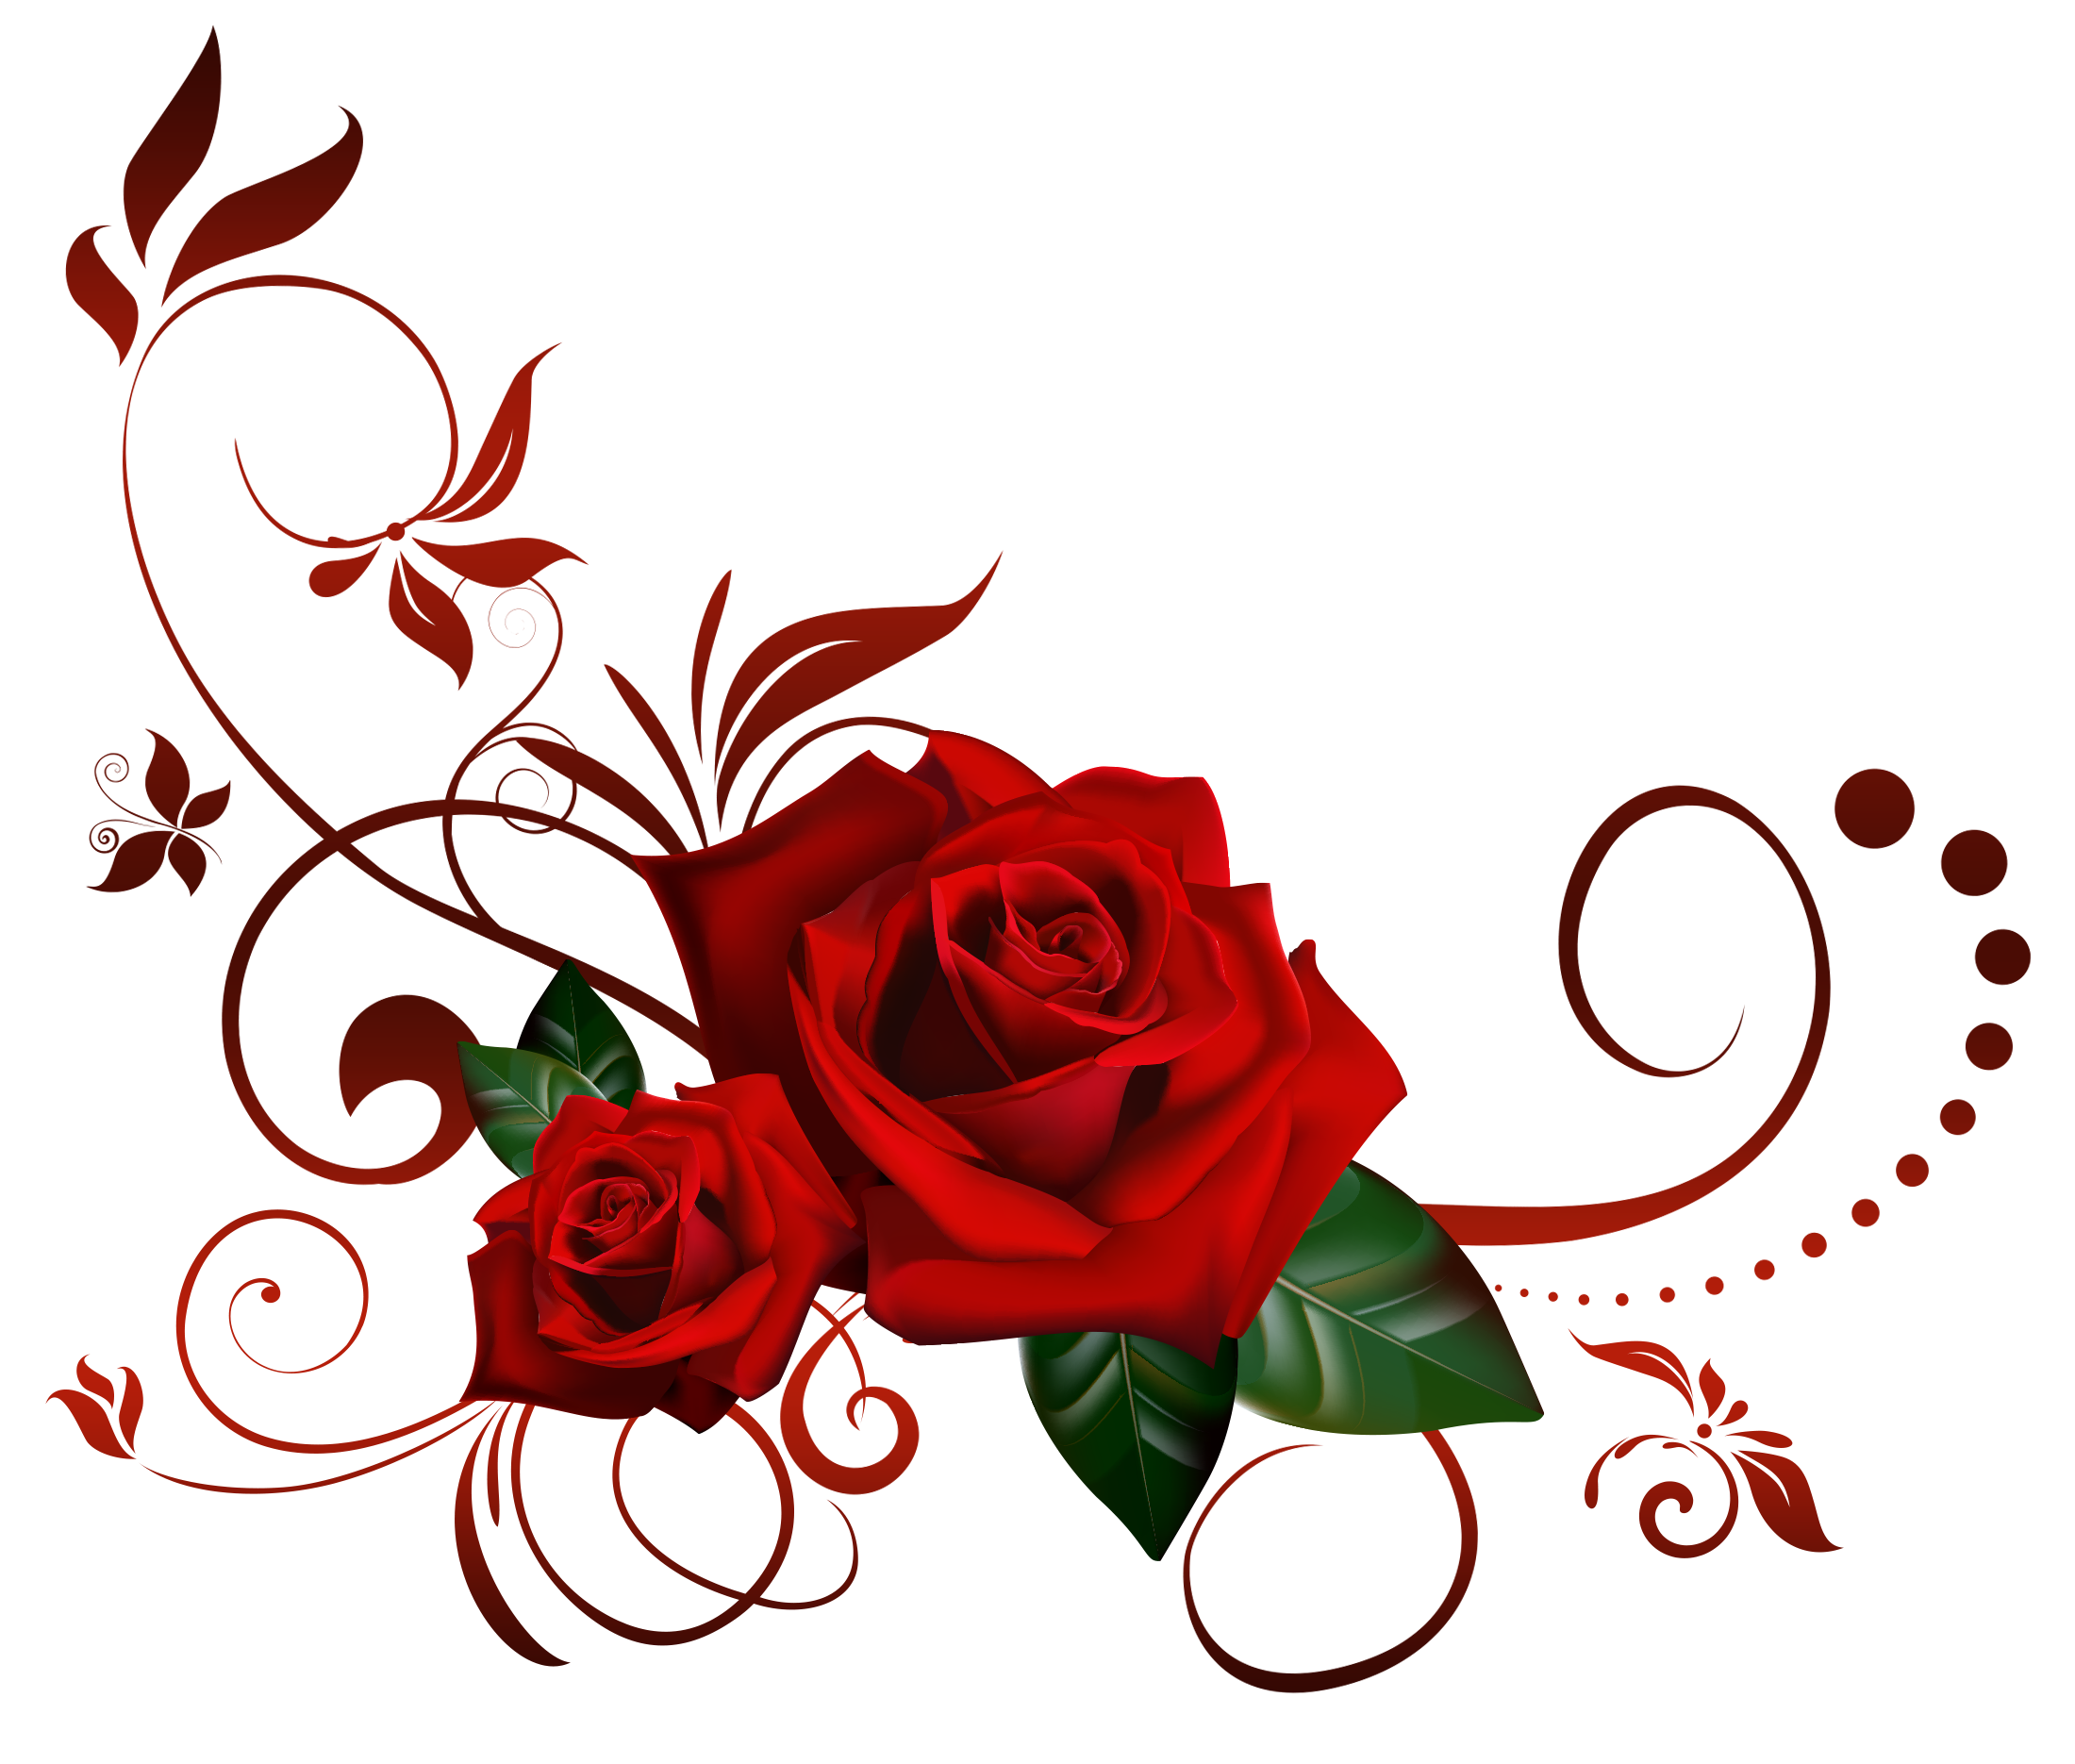 Red Rose Png Flowers Images And Transparent Background Clipart Free